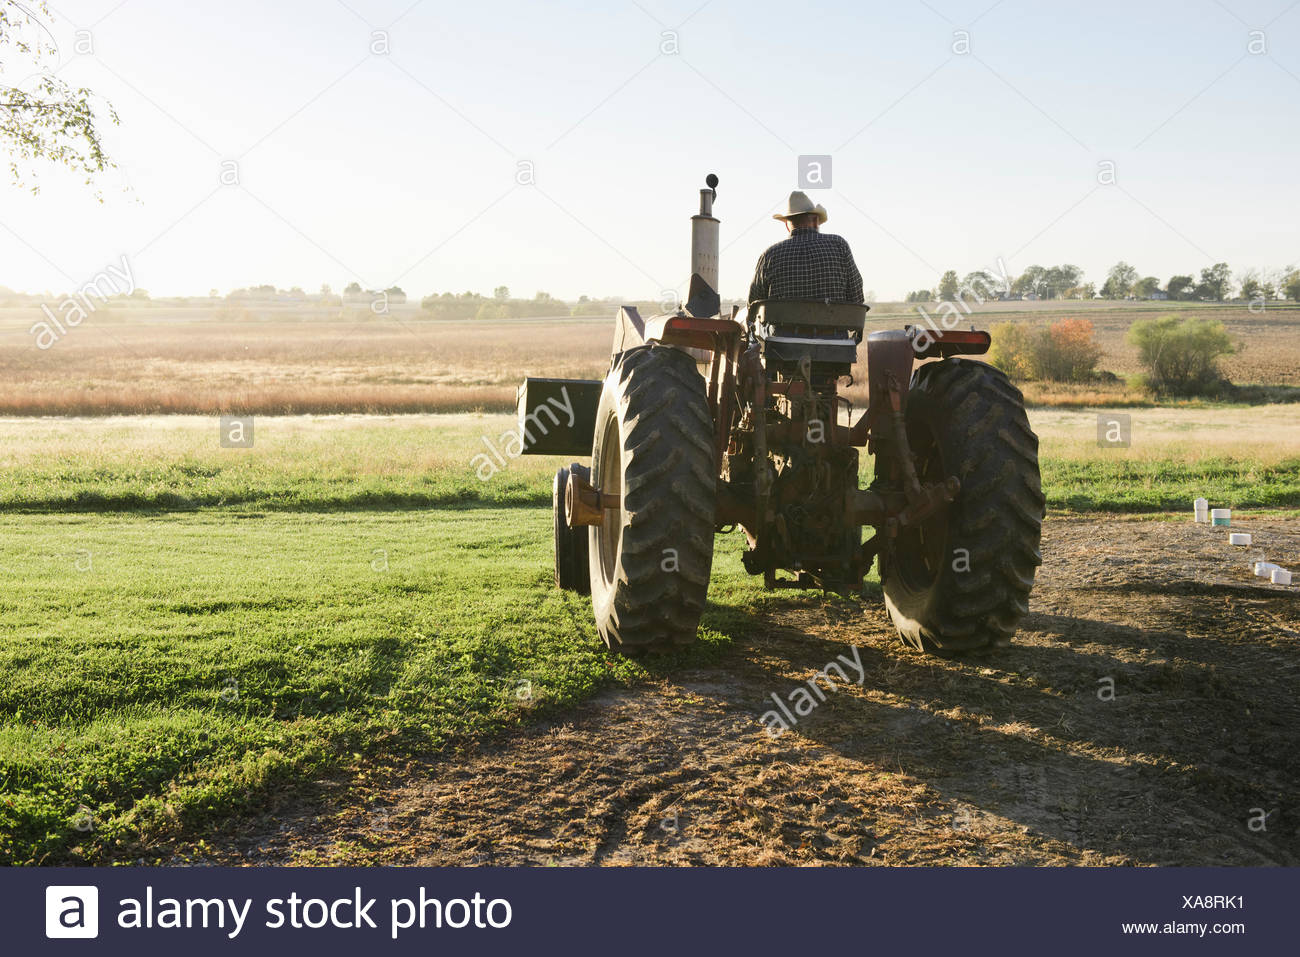 Rear view of senior male farmer driving tractor in field, Plattsburg, Missouri, USA - Stock Image